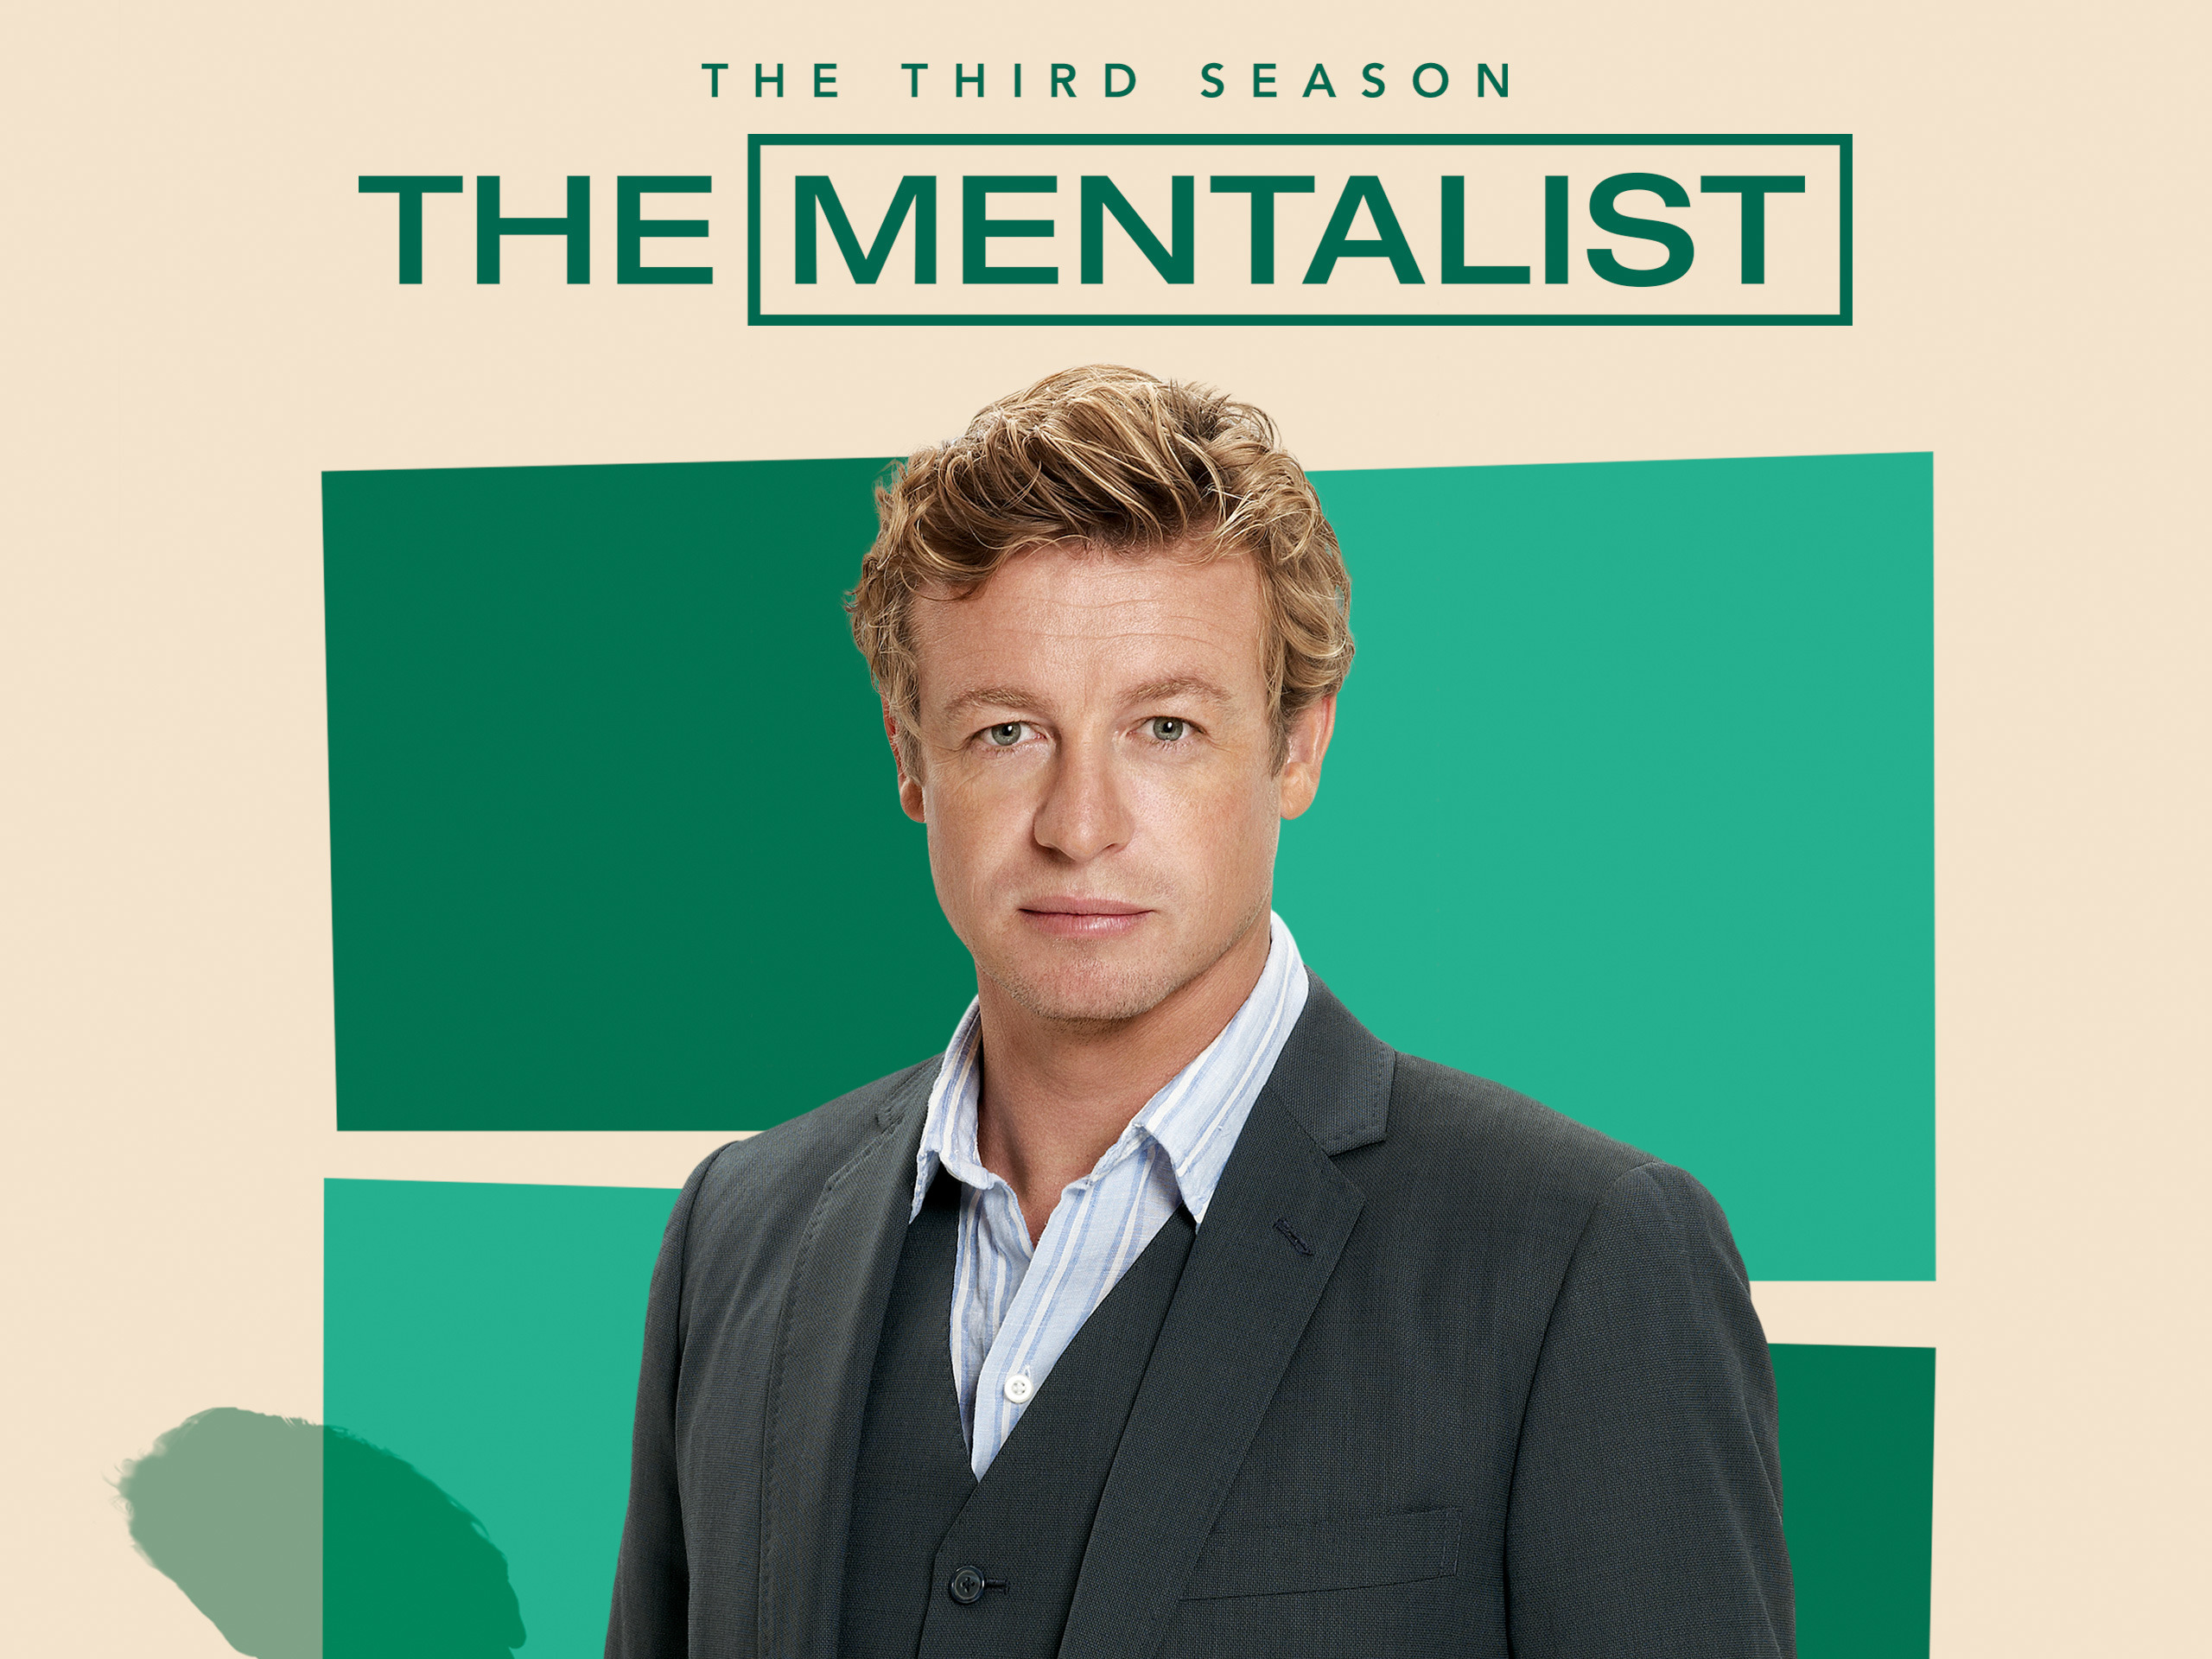 Prime Video: The Mentalist: The Complete Third Season